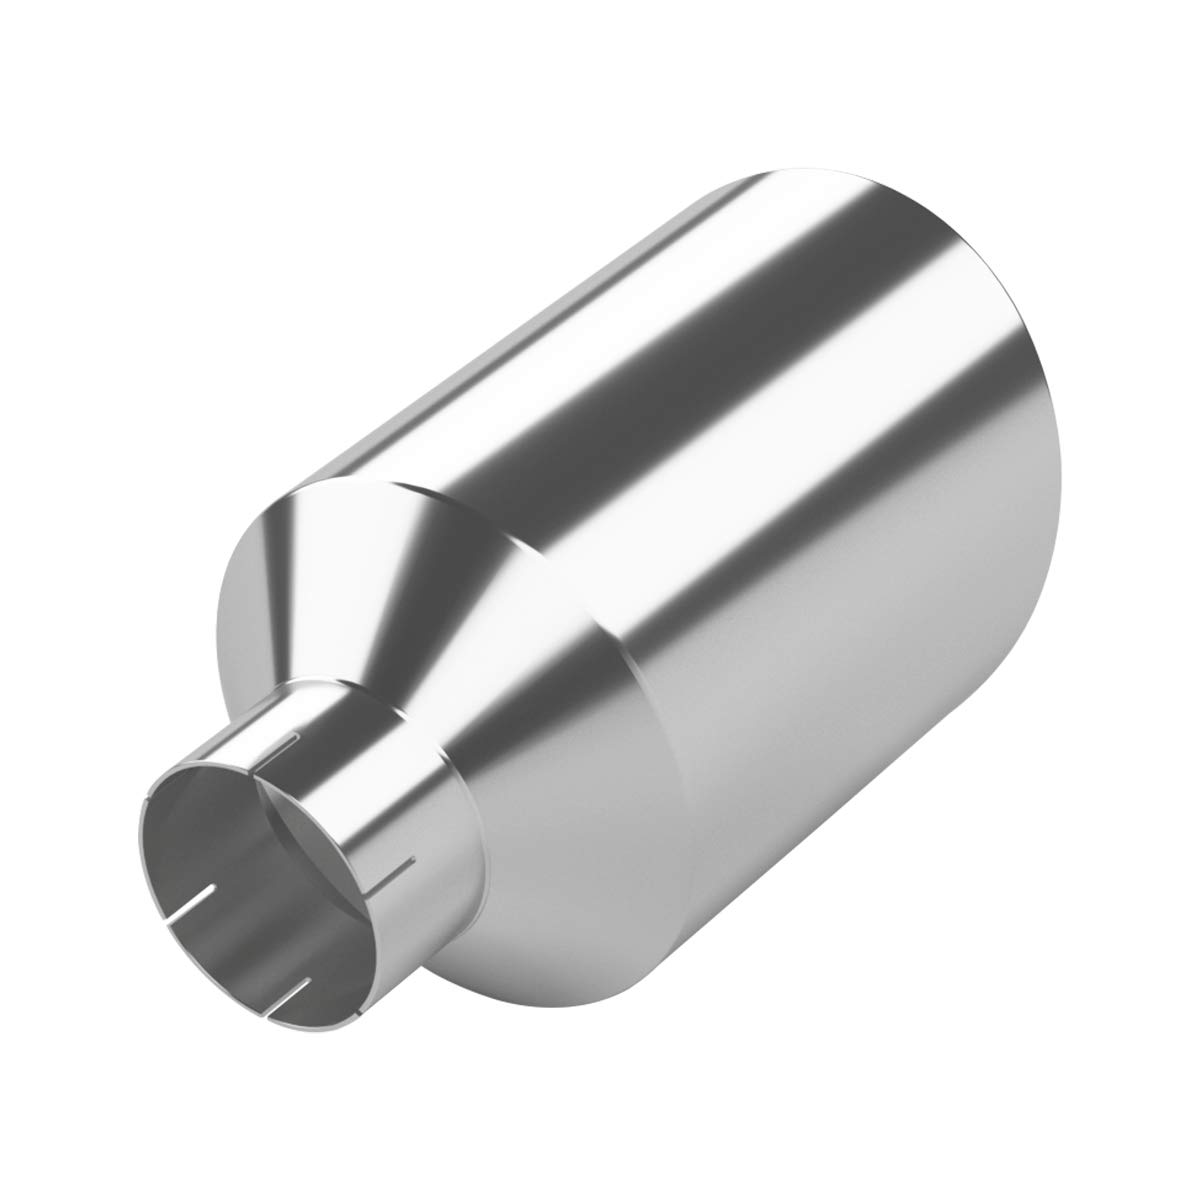 LCGP 4 Inlet 8 Outlet 15 Length Rolled End Angle Cut Black Tail Pipe Clamp-On Diesel Exhaust Tip